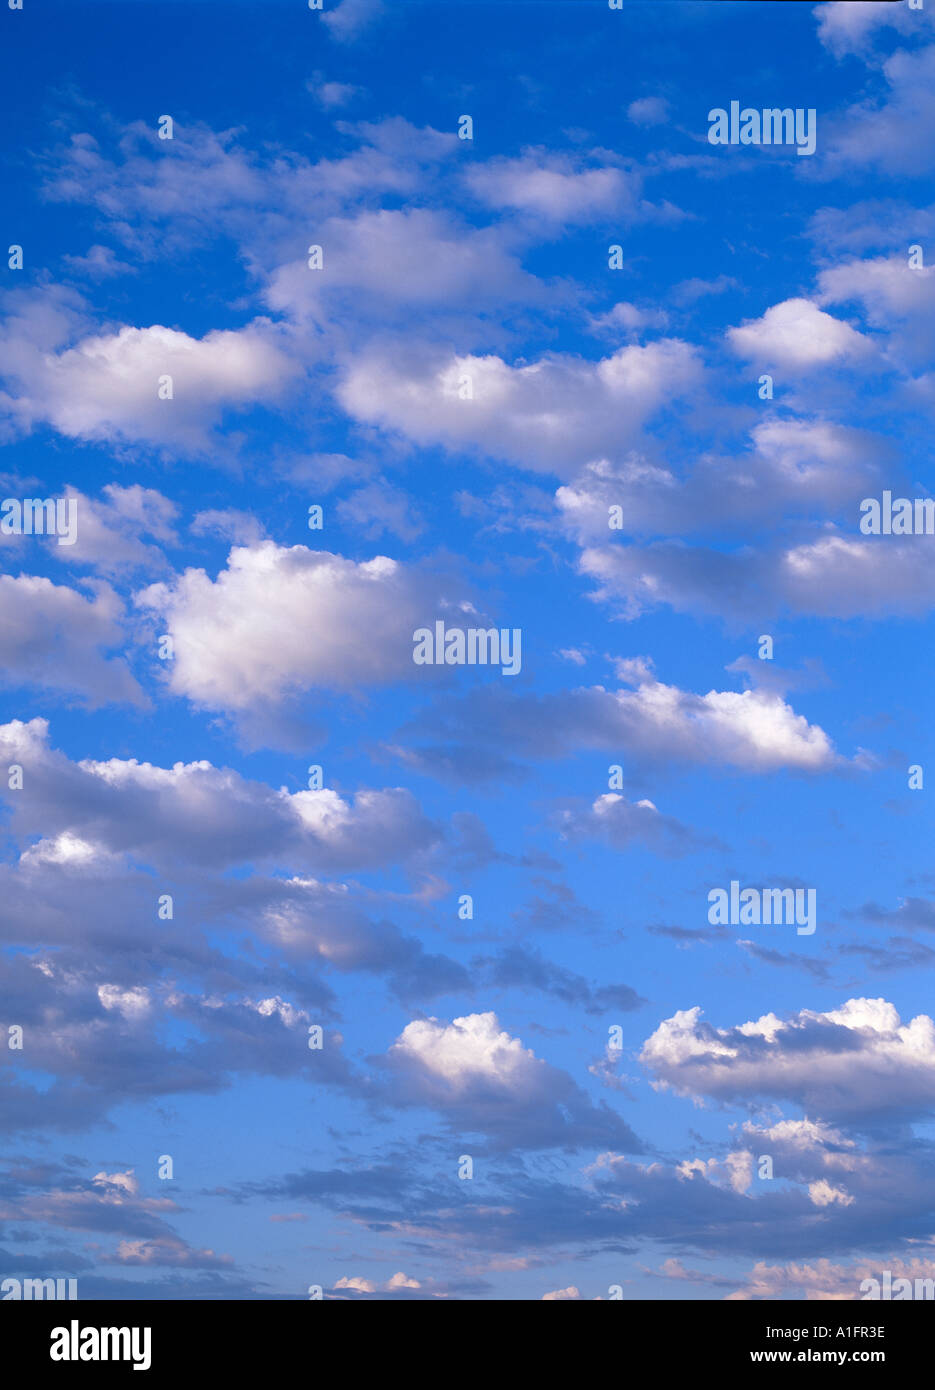 Puffy clouds - Stock Image